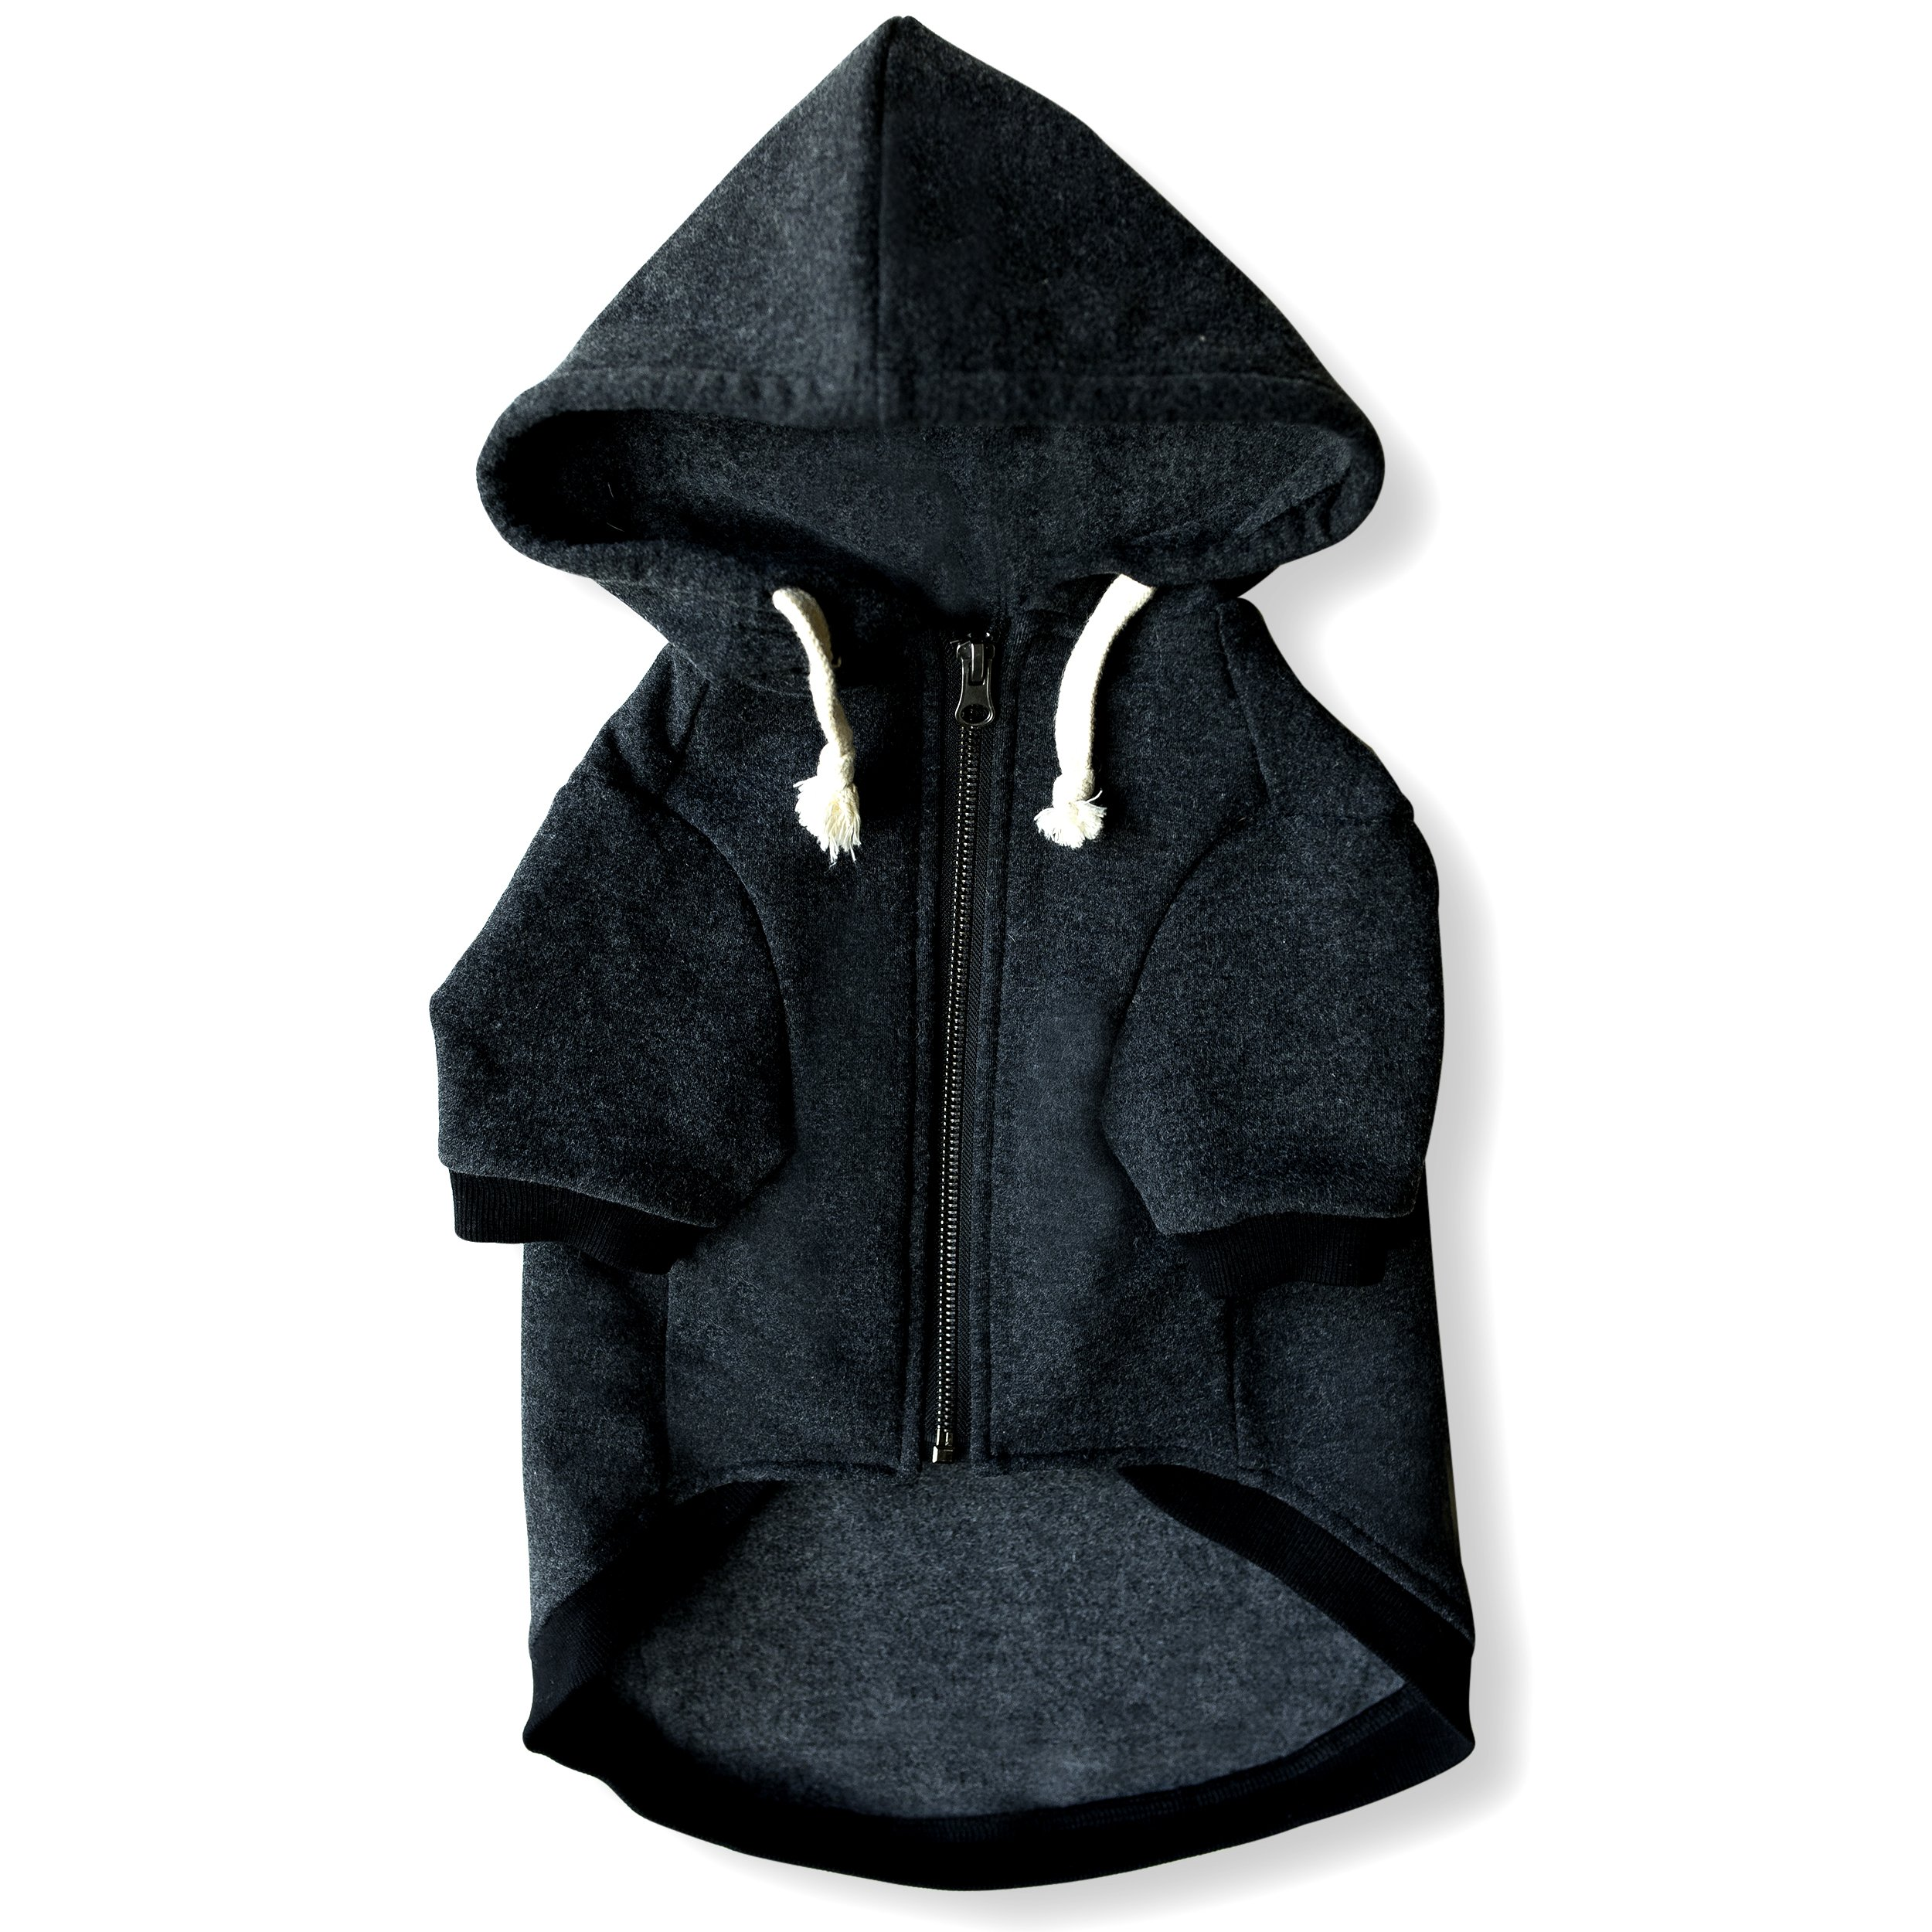 Ellie Dog Wear Zip Up Adventure Charcoal Grey Dog Hoodie with Hook & Loop Pockets and Adjustable Drawstring Hood - XXS to XXL Available - Comfortable & Versatile Premium Dog Hoodies (L) by Ellie Dog Wear